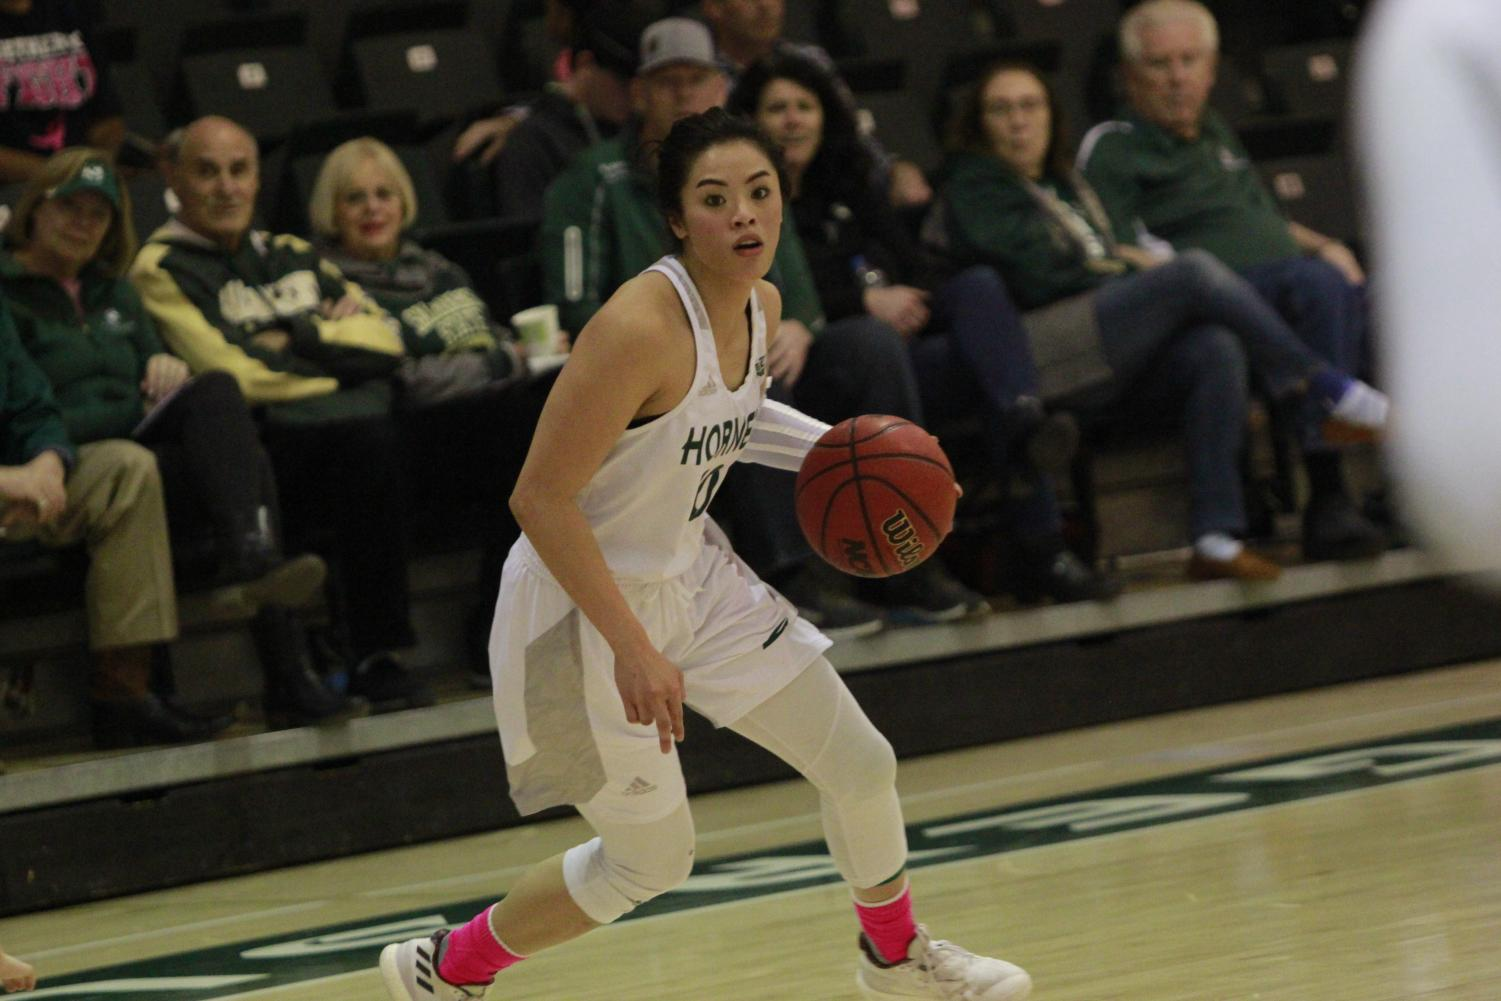 Sac State junior guard Gabi Bade crosses over in a 75-57 loss against Portland State Feb. 23 at the Nest. Bade finished with 20 points on five of 10 from three.